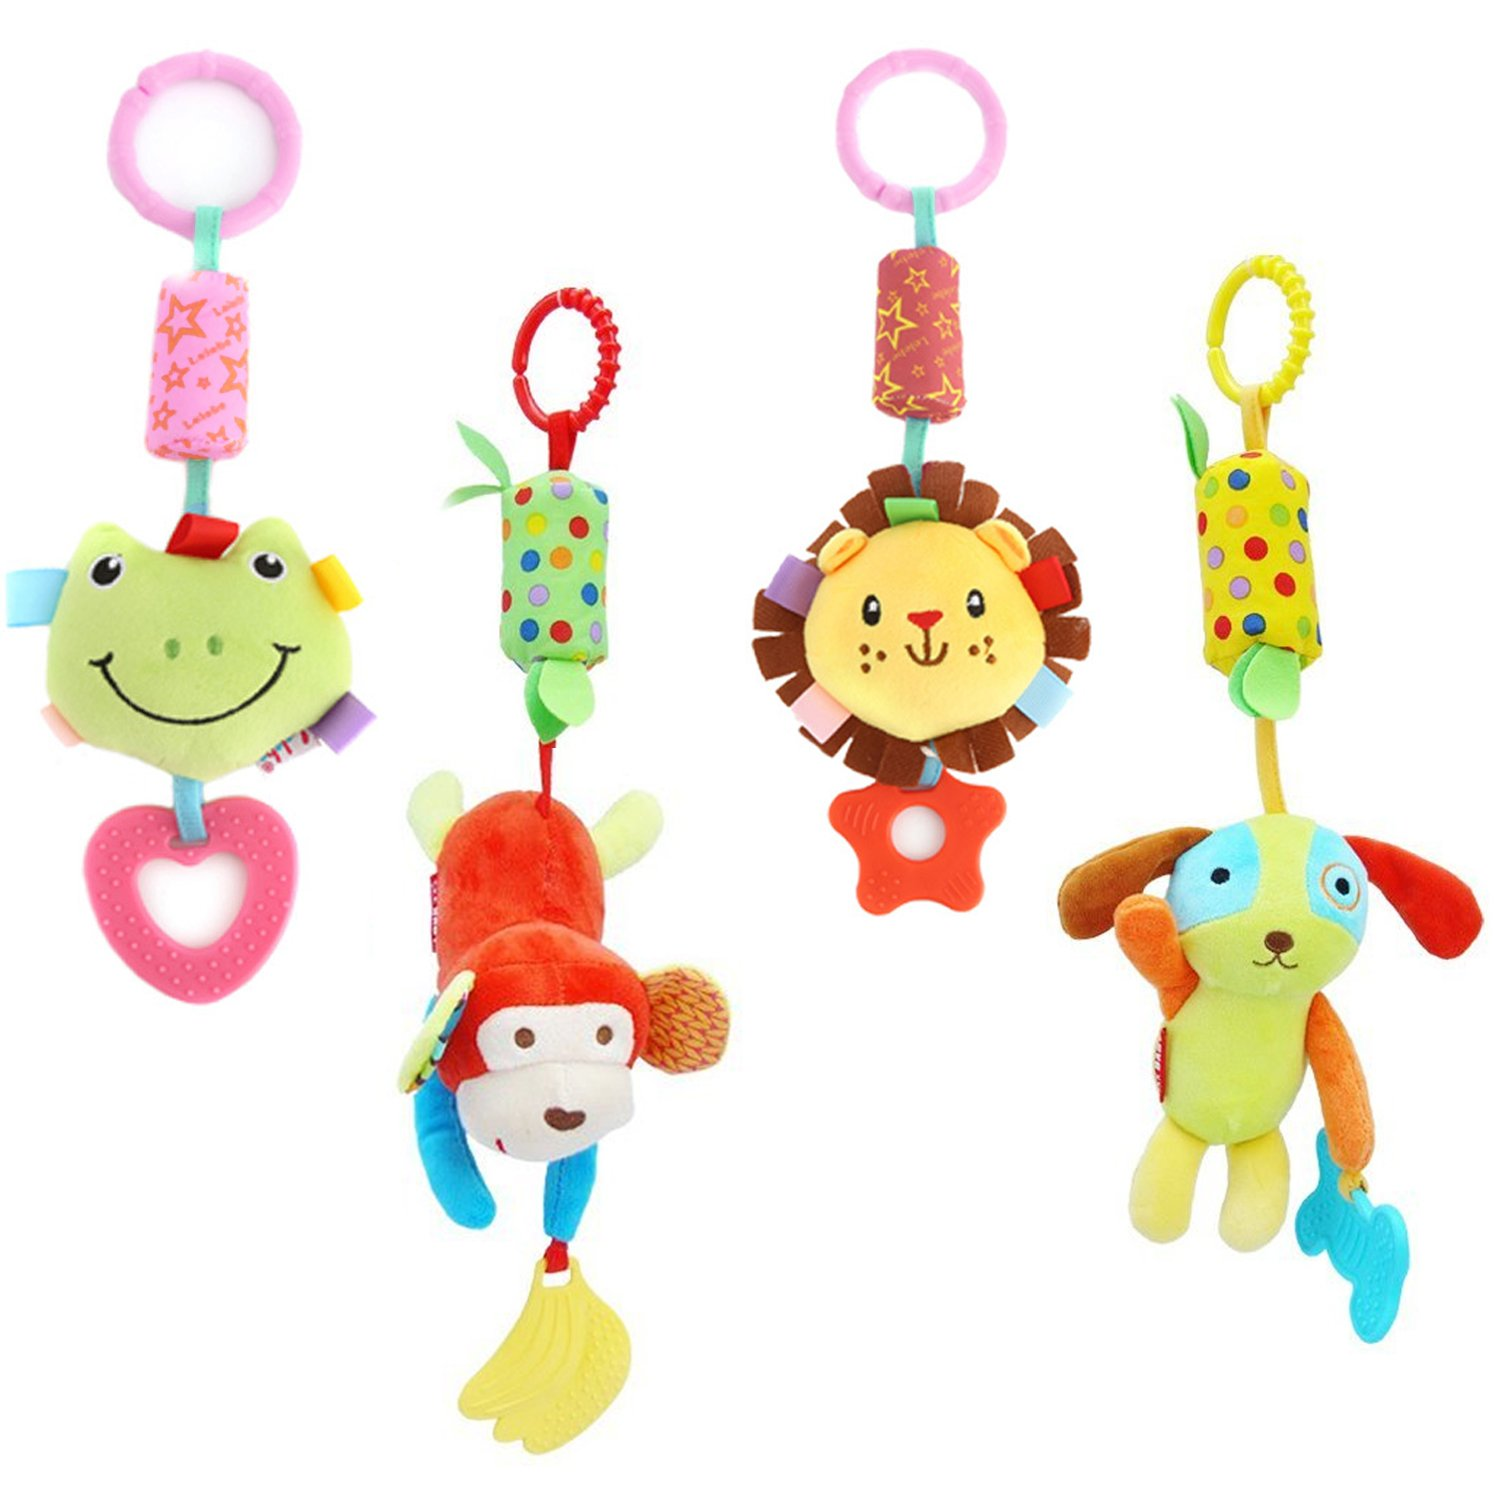 DOMIRE Baby Rattle Hanging Toys, 4 Pack Washable Infant Stroller Toys with Cute Wind Chime and Plush Squeak Crib Toys for Baby Boys Girls